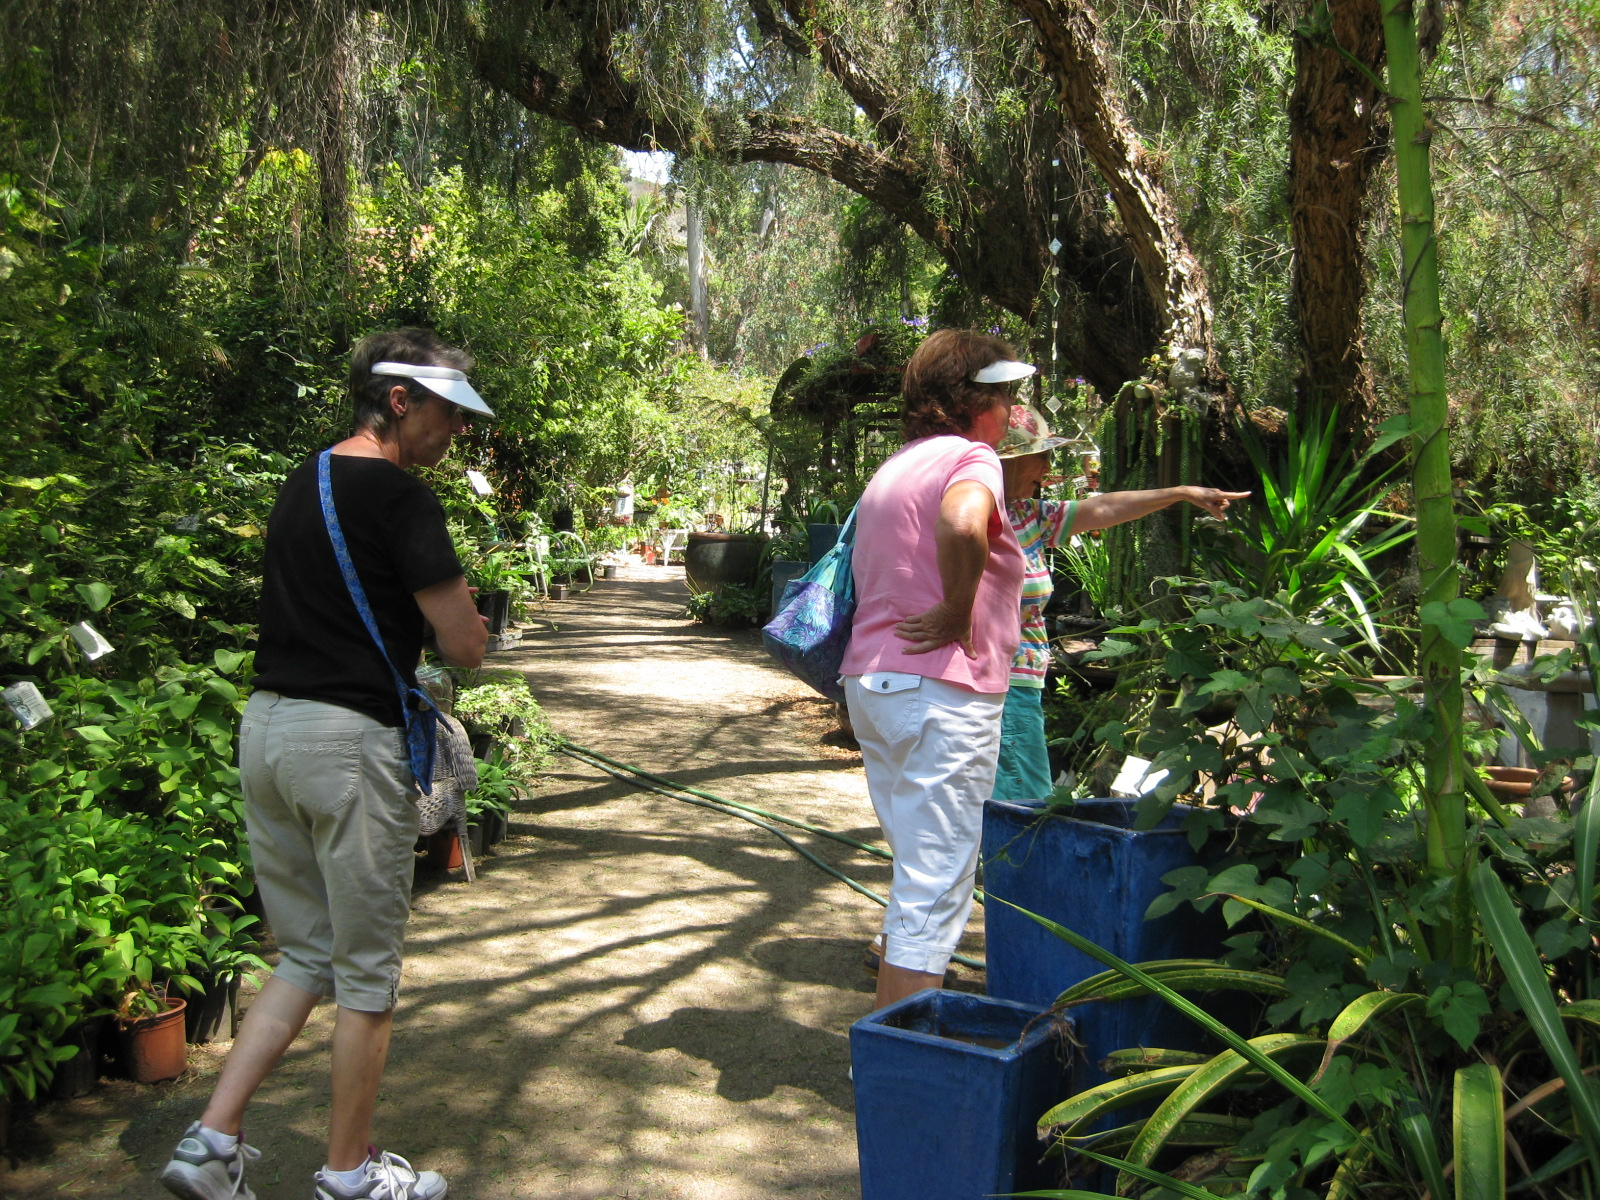 Travels With Marie: BUENA CREEK GARDENS IN SAN MARCOS